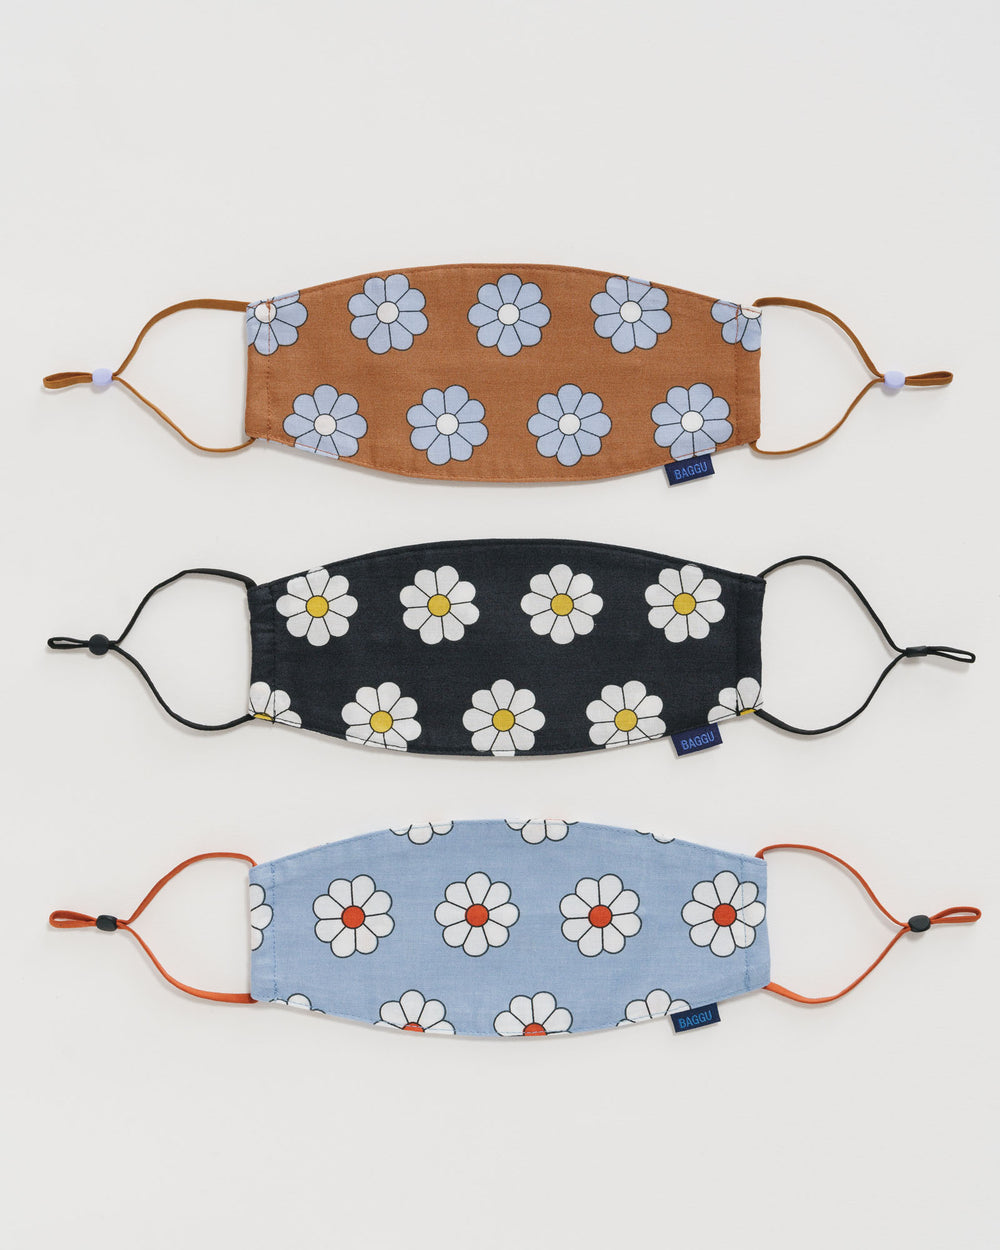 Fabric Mask Loop - Daisy (Set of 3)  | Baggu | 100% Organic Cotton